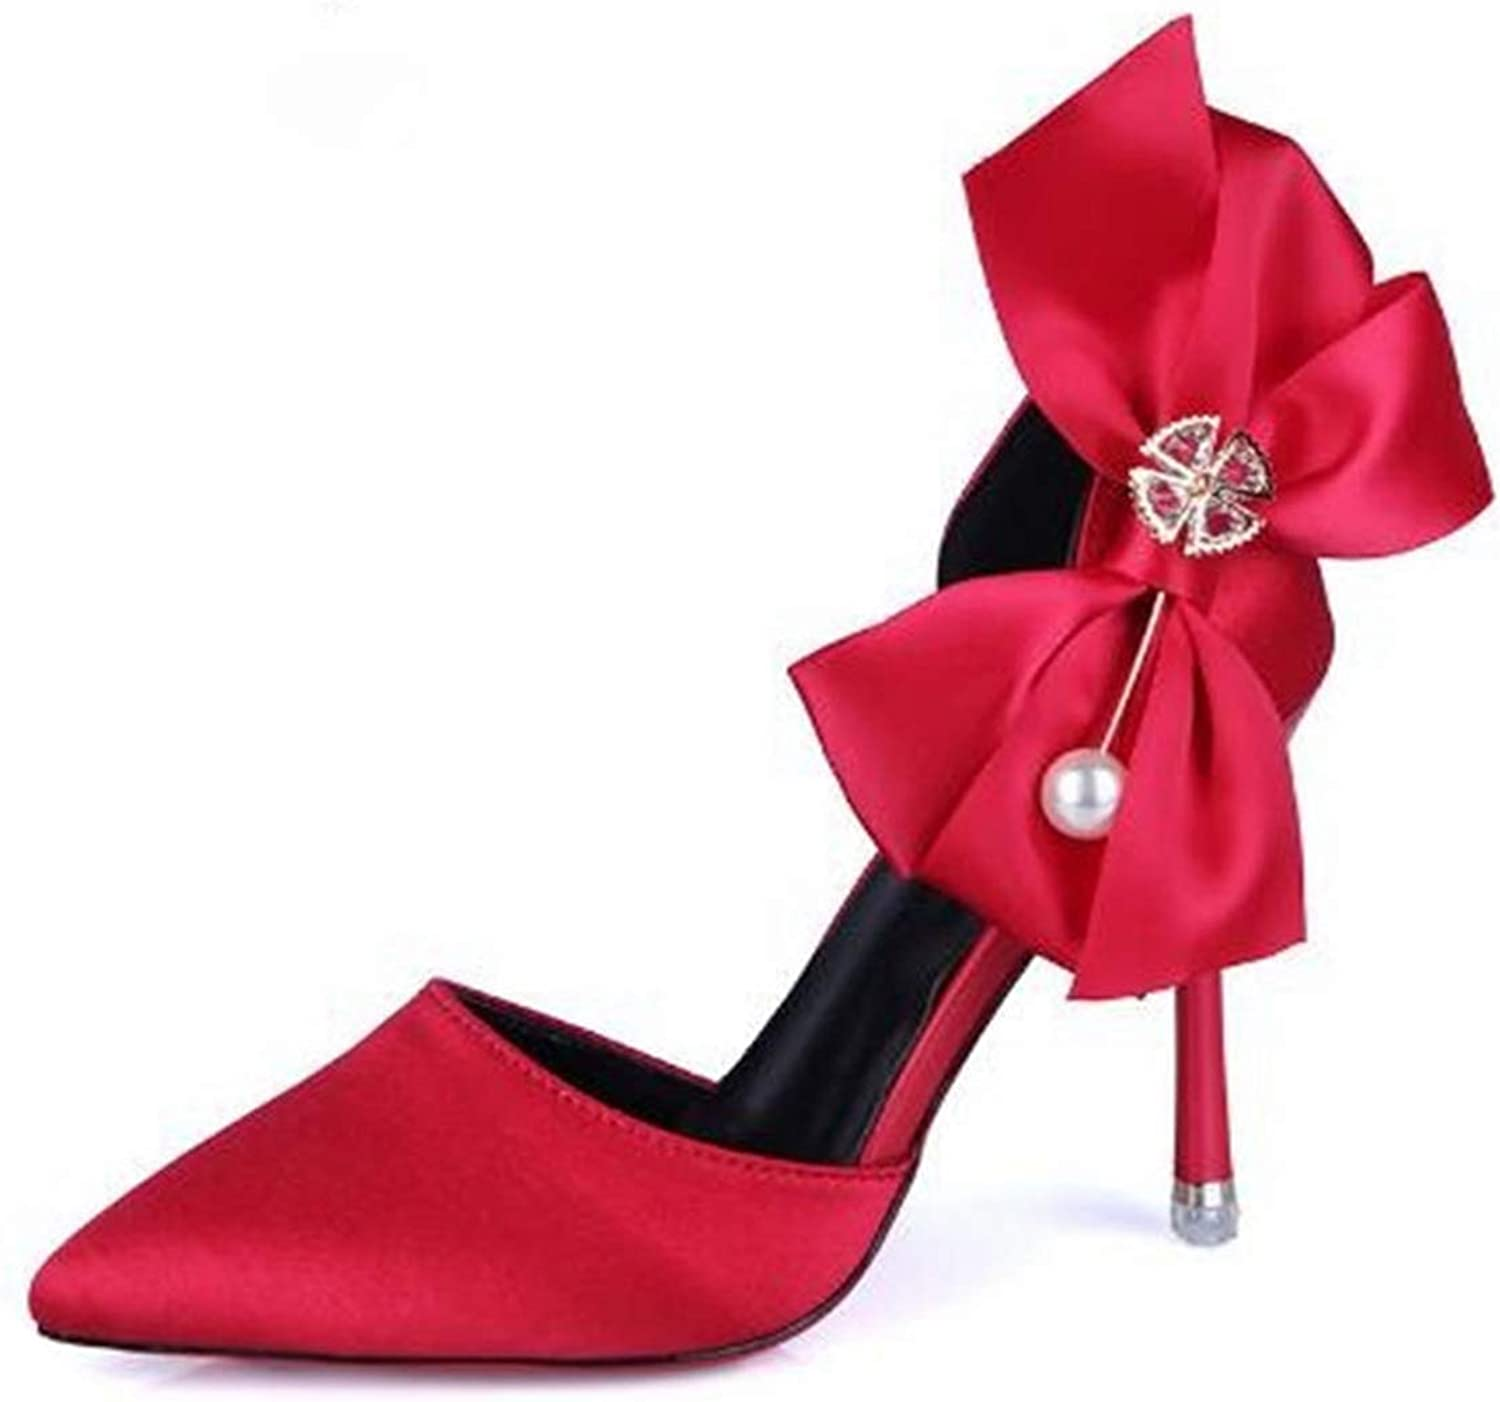 Women Fashion Silk Two-Piece Pumps Super Thin High Heels Carved shoes Woman Bowtie Party shoes